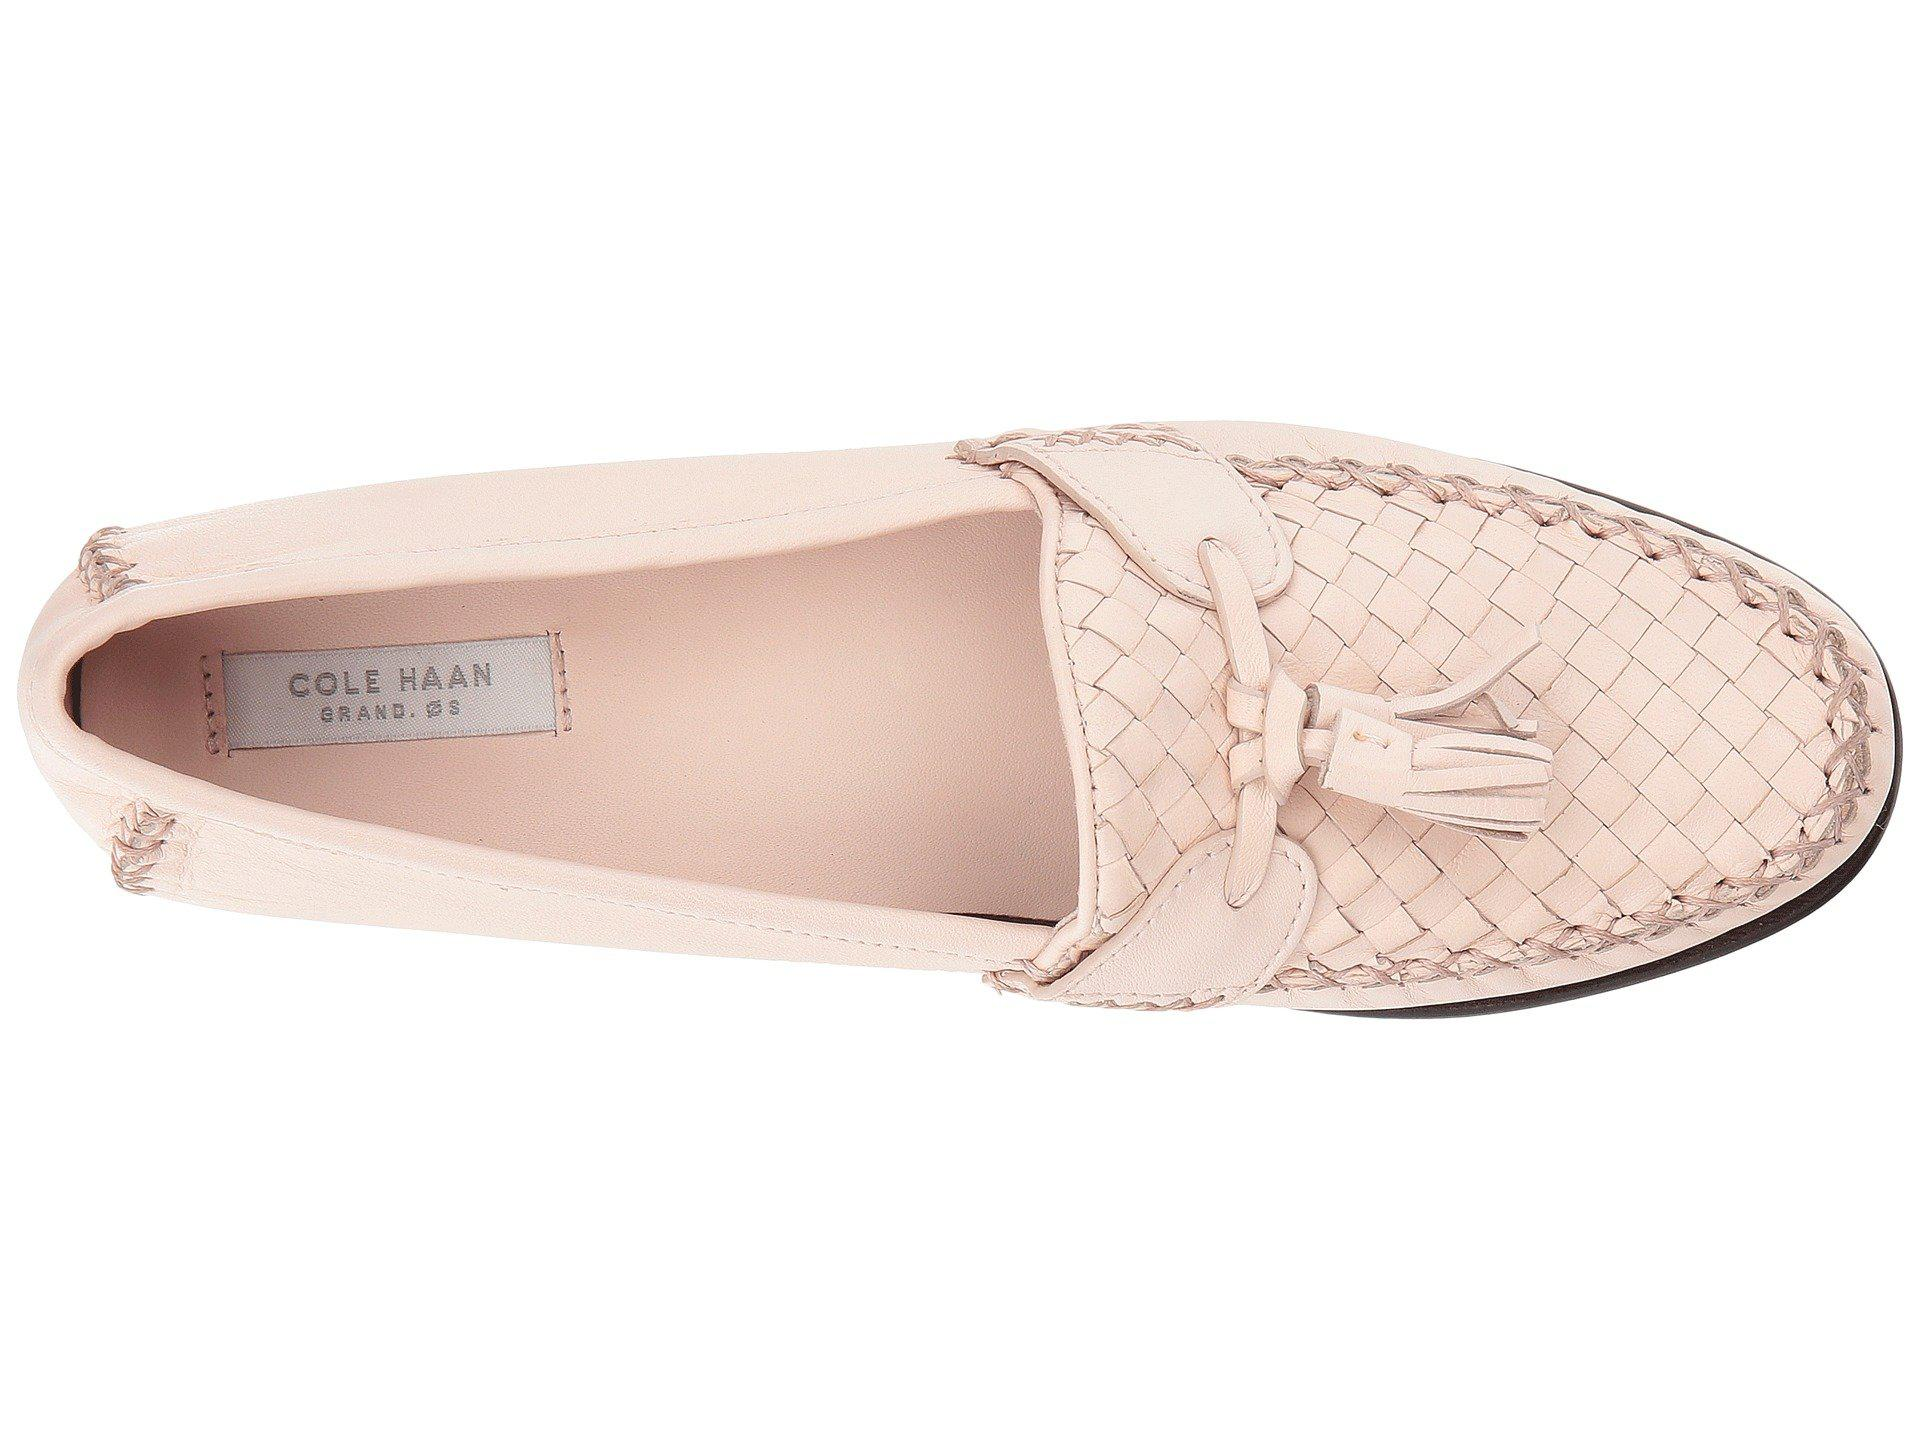 9c49190baee Cole Haan - Pink Jagger Soft Weave Loafer - Lyst. View fullscreen